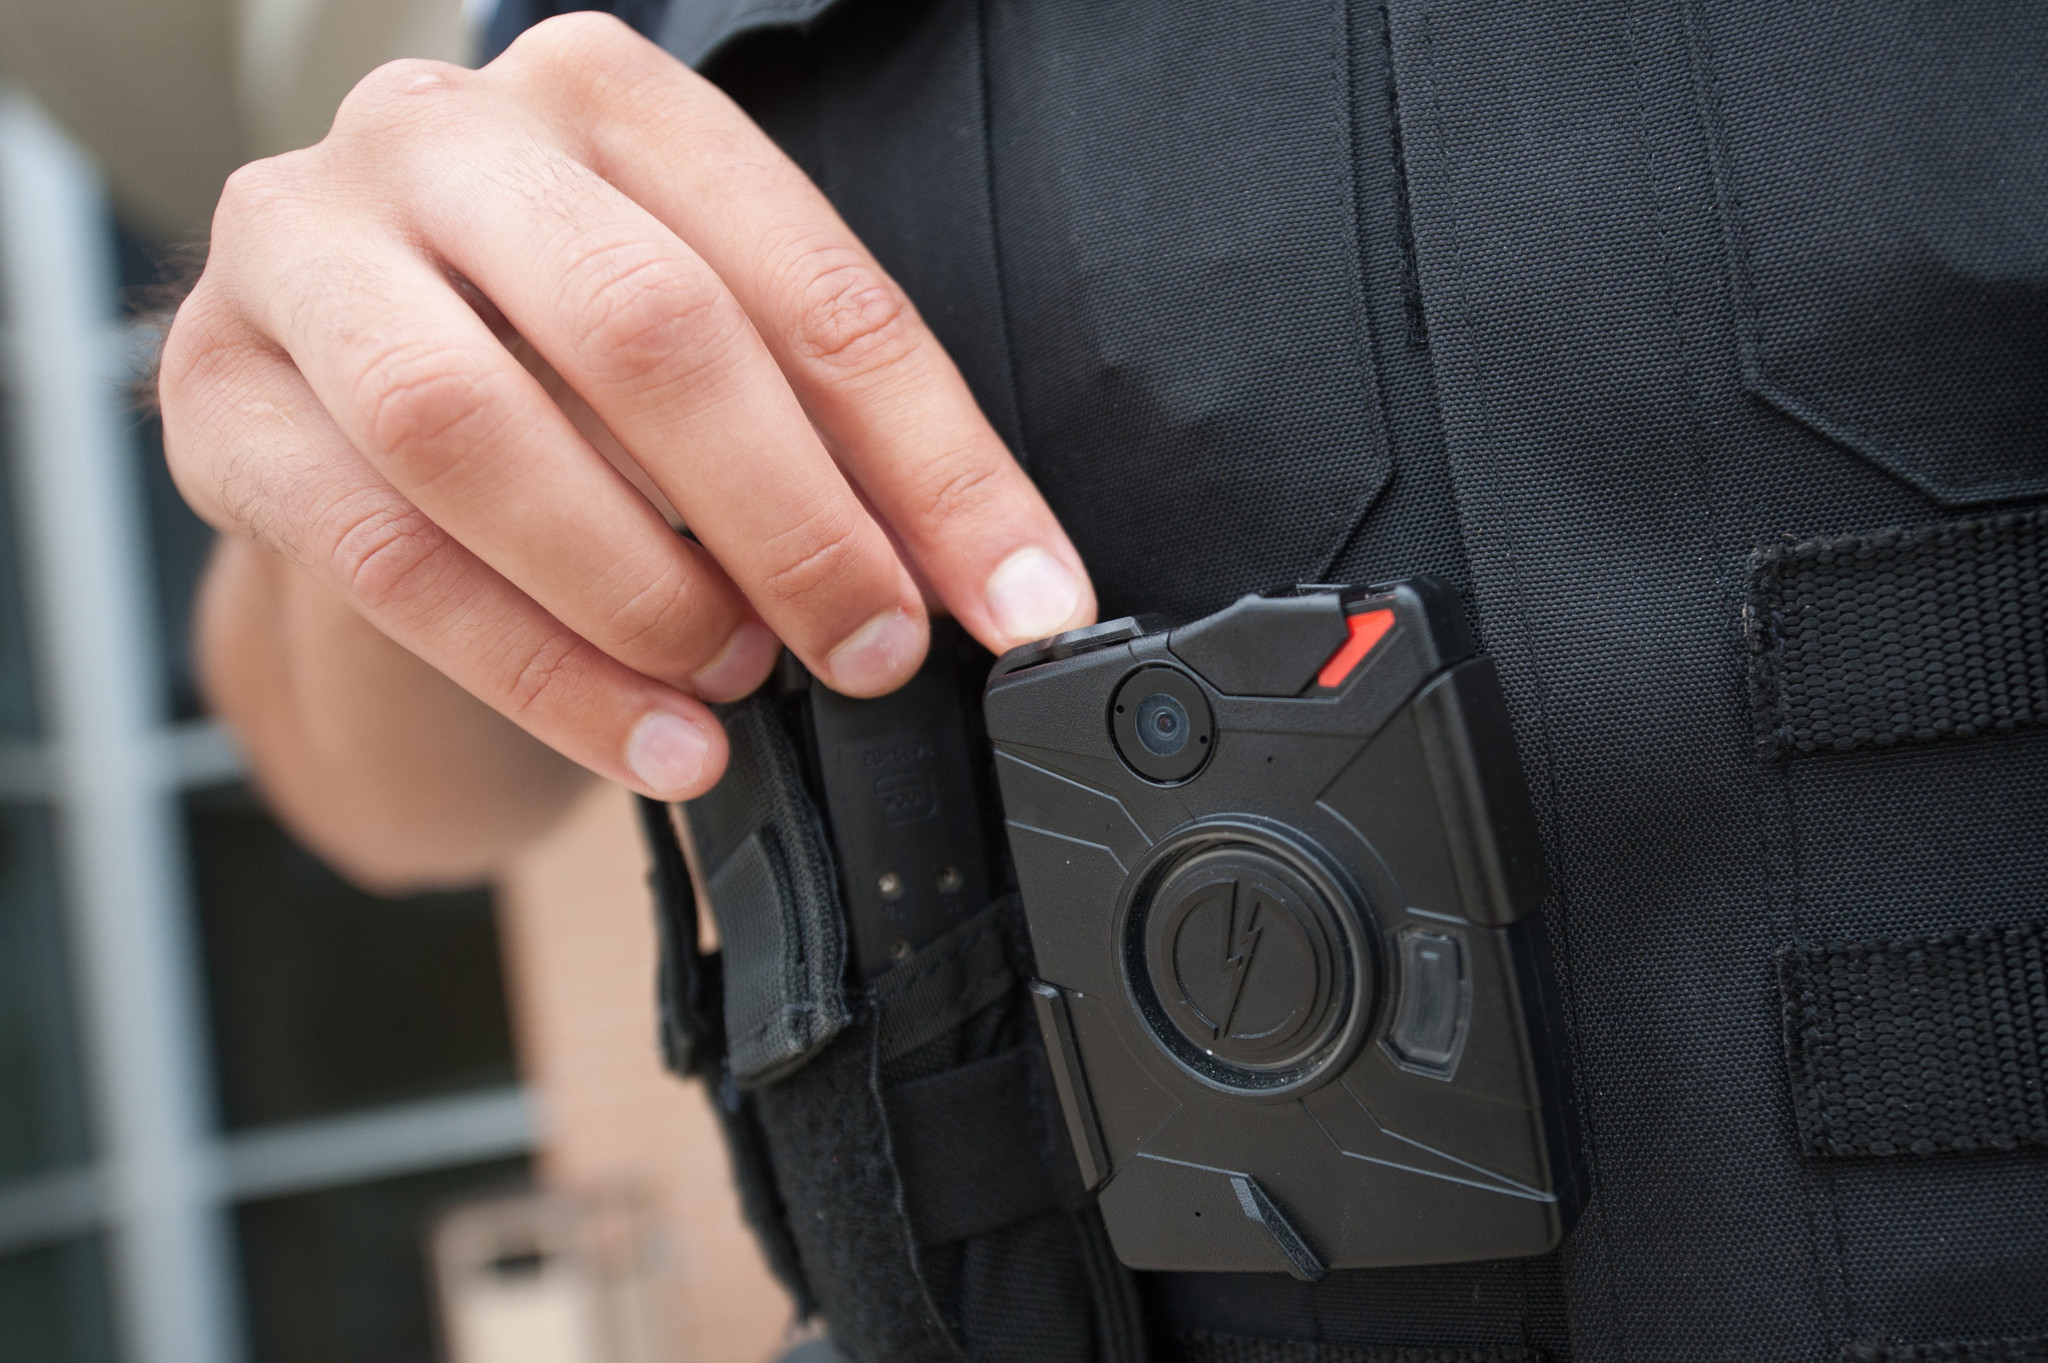 More Chicago police officers to wear body cameras - Chicago Tribune